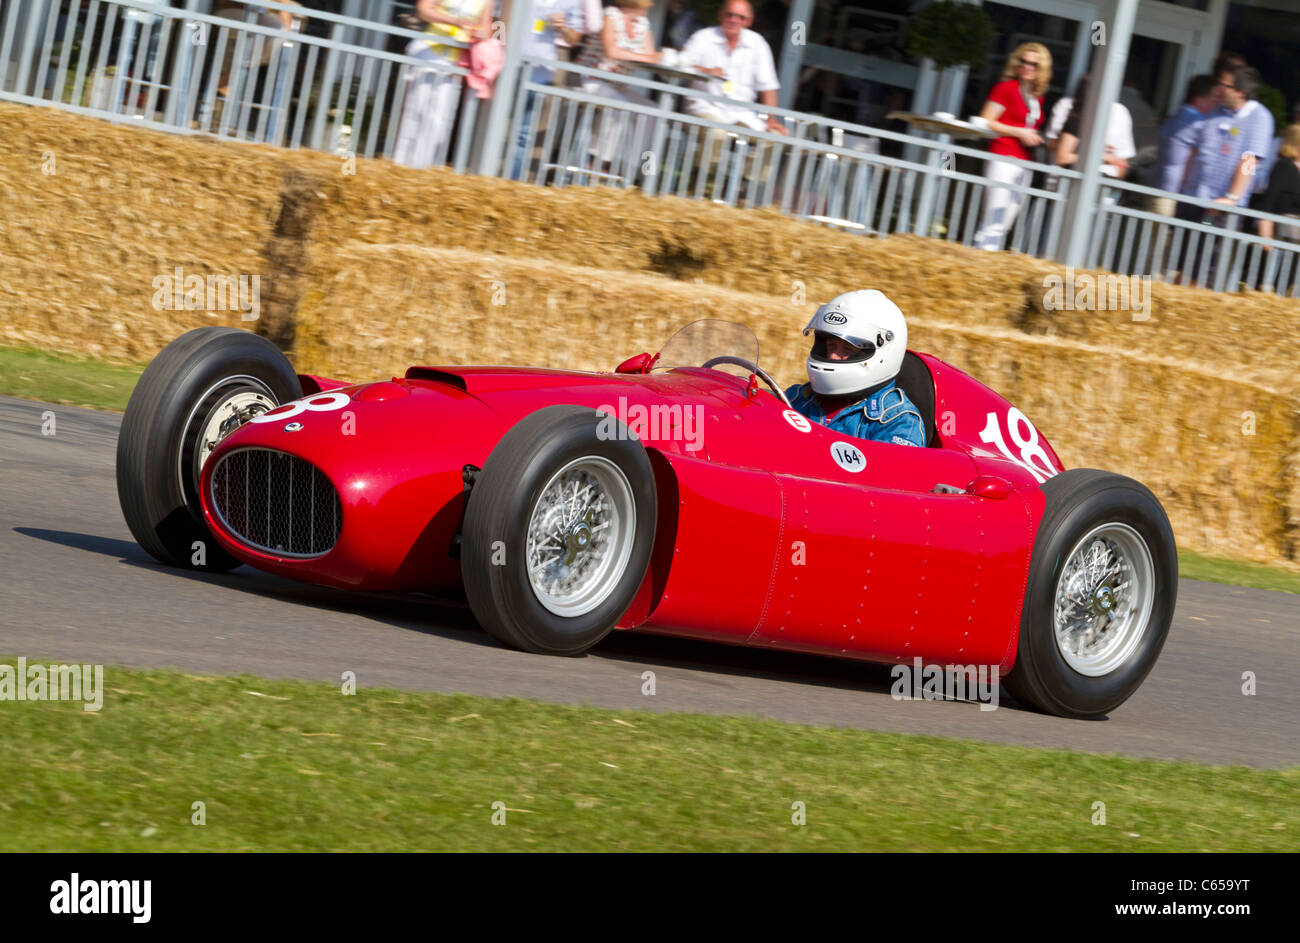 1954 type Lancia D50 with driver Eberhard Thiesen at the 2011 Goodwood Festival of Speed, Sussex, England, UK - Stock Image